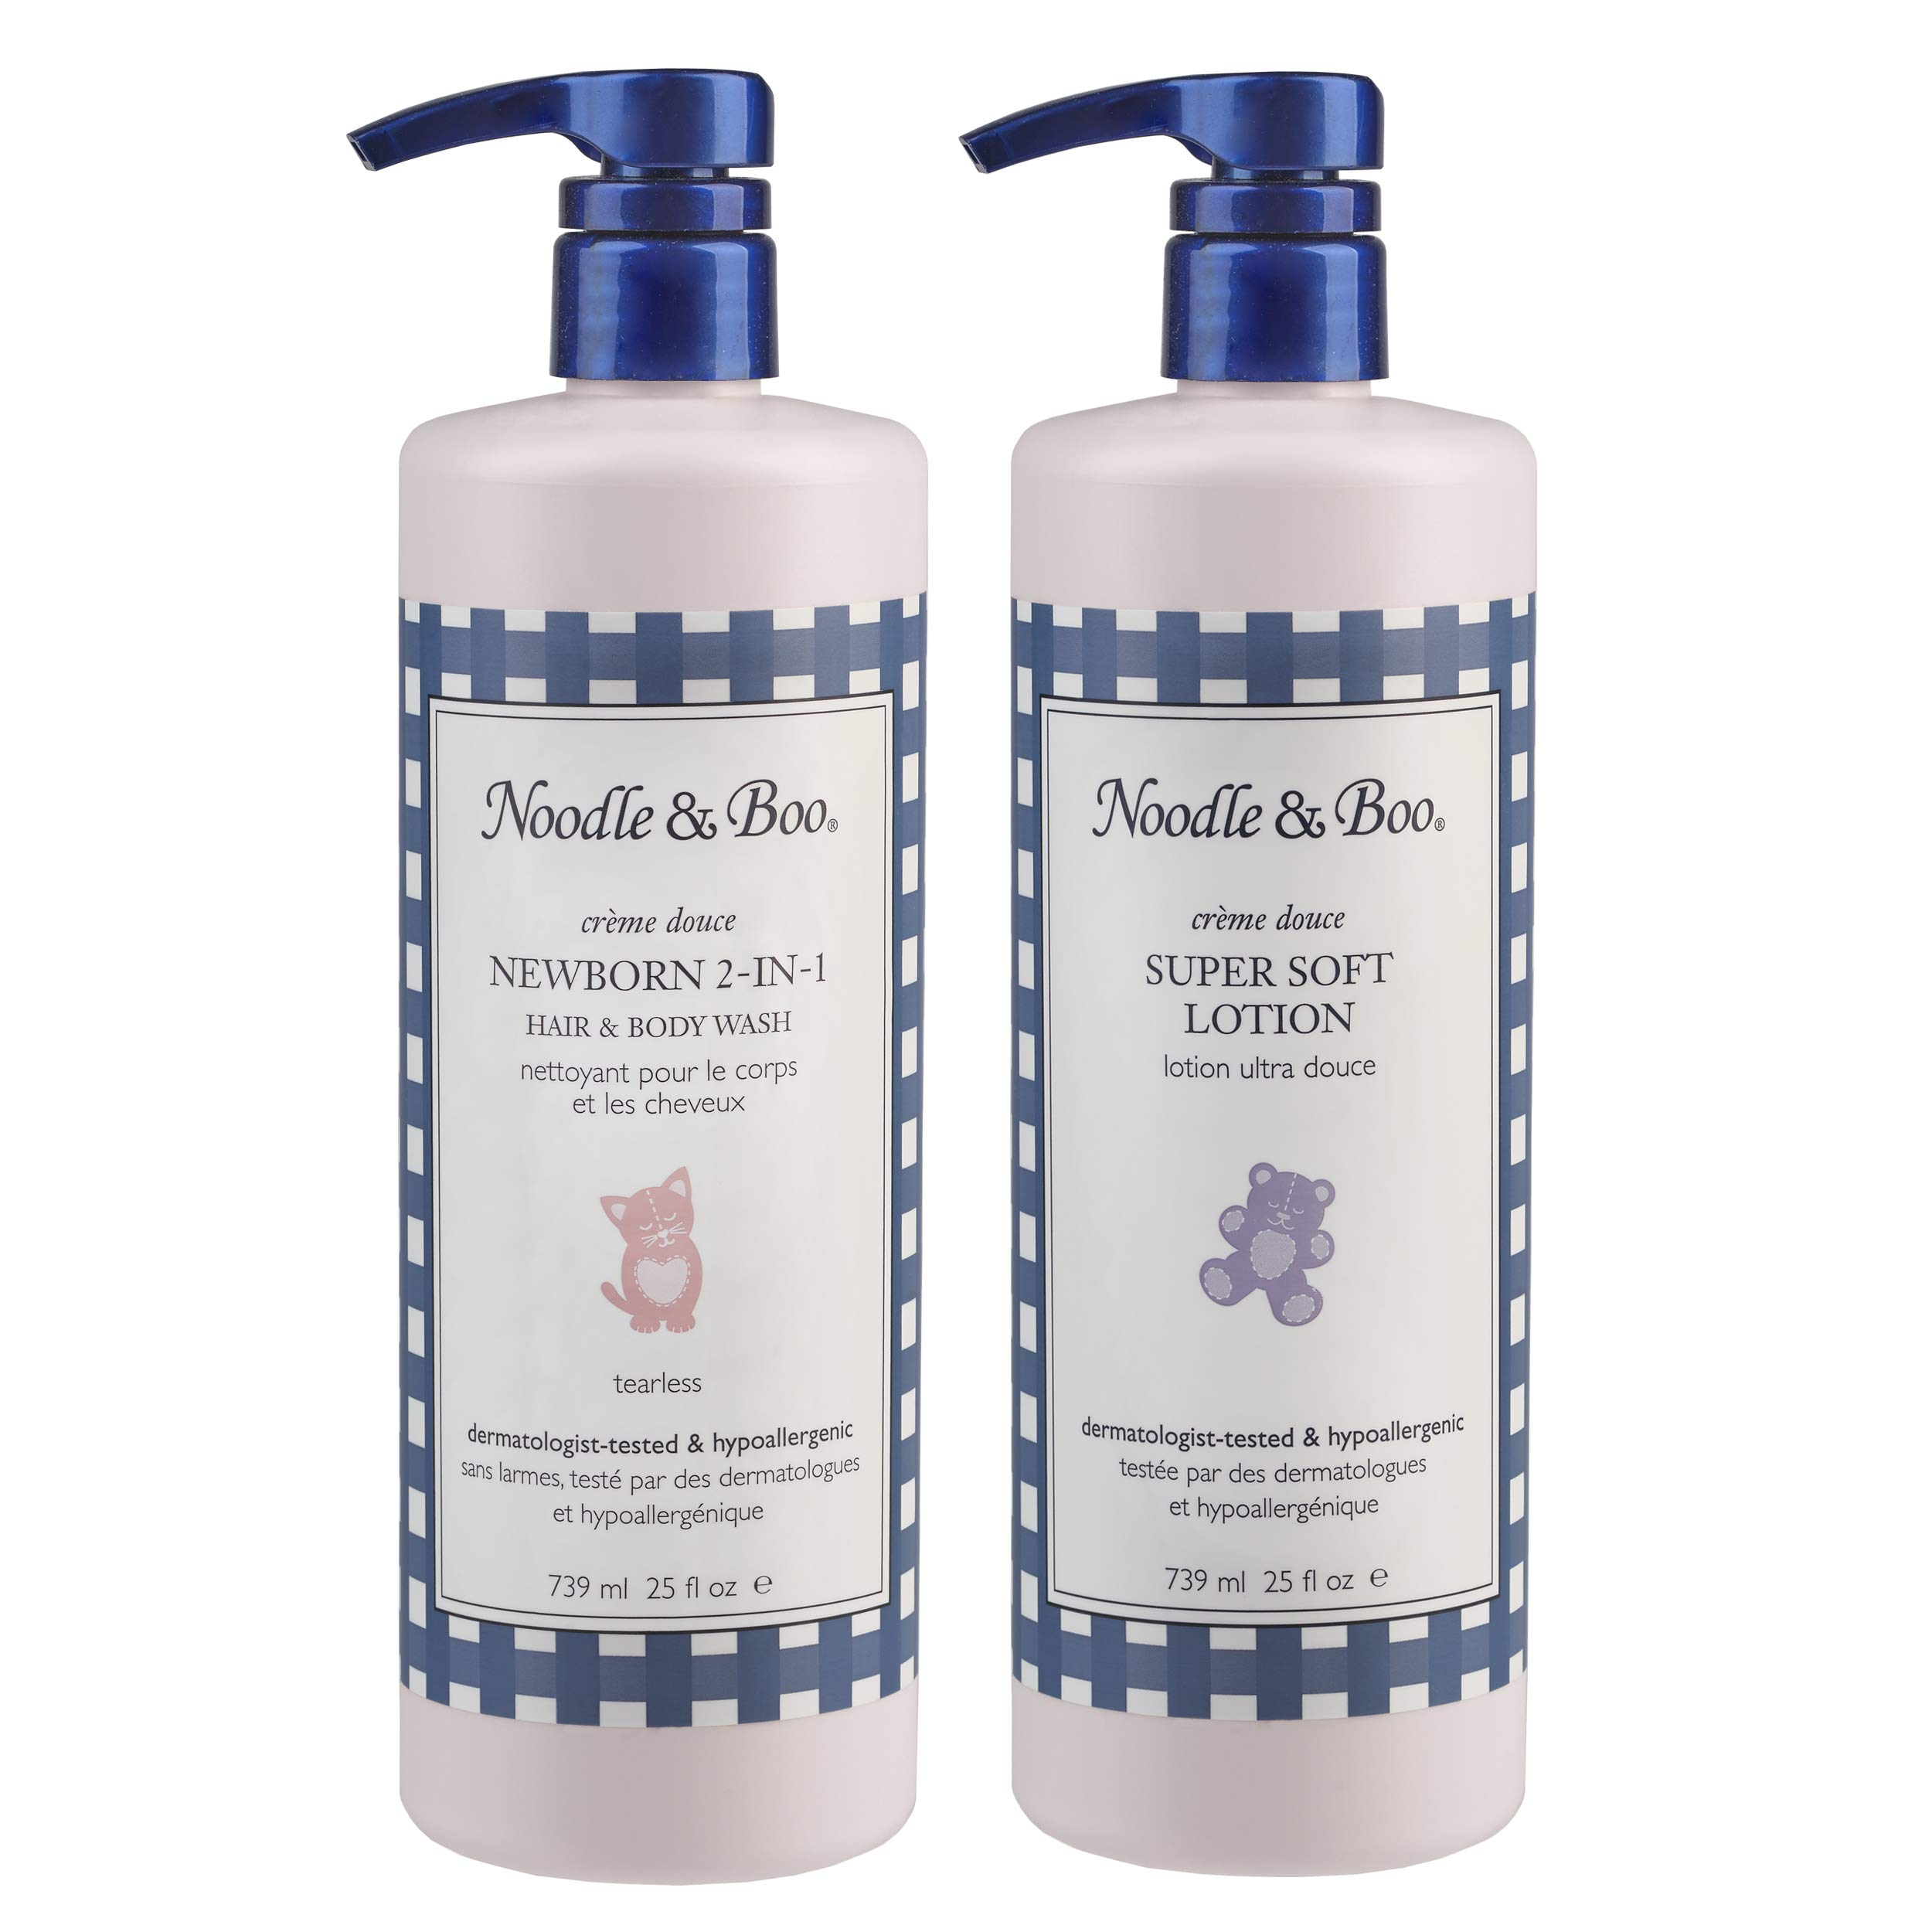 Noodle & Boo 2-in-1 Newborn Hair & Body Wash and Super Soft Lotion Bundle